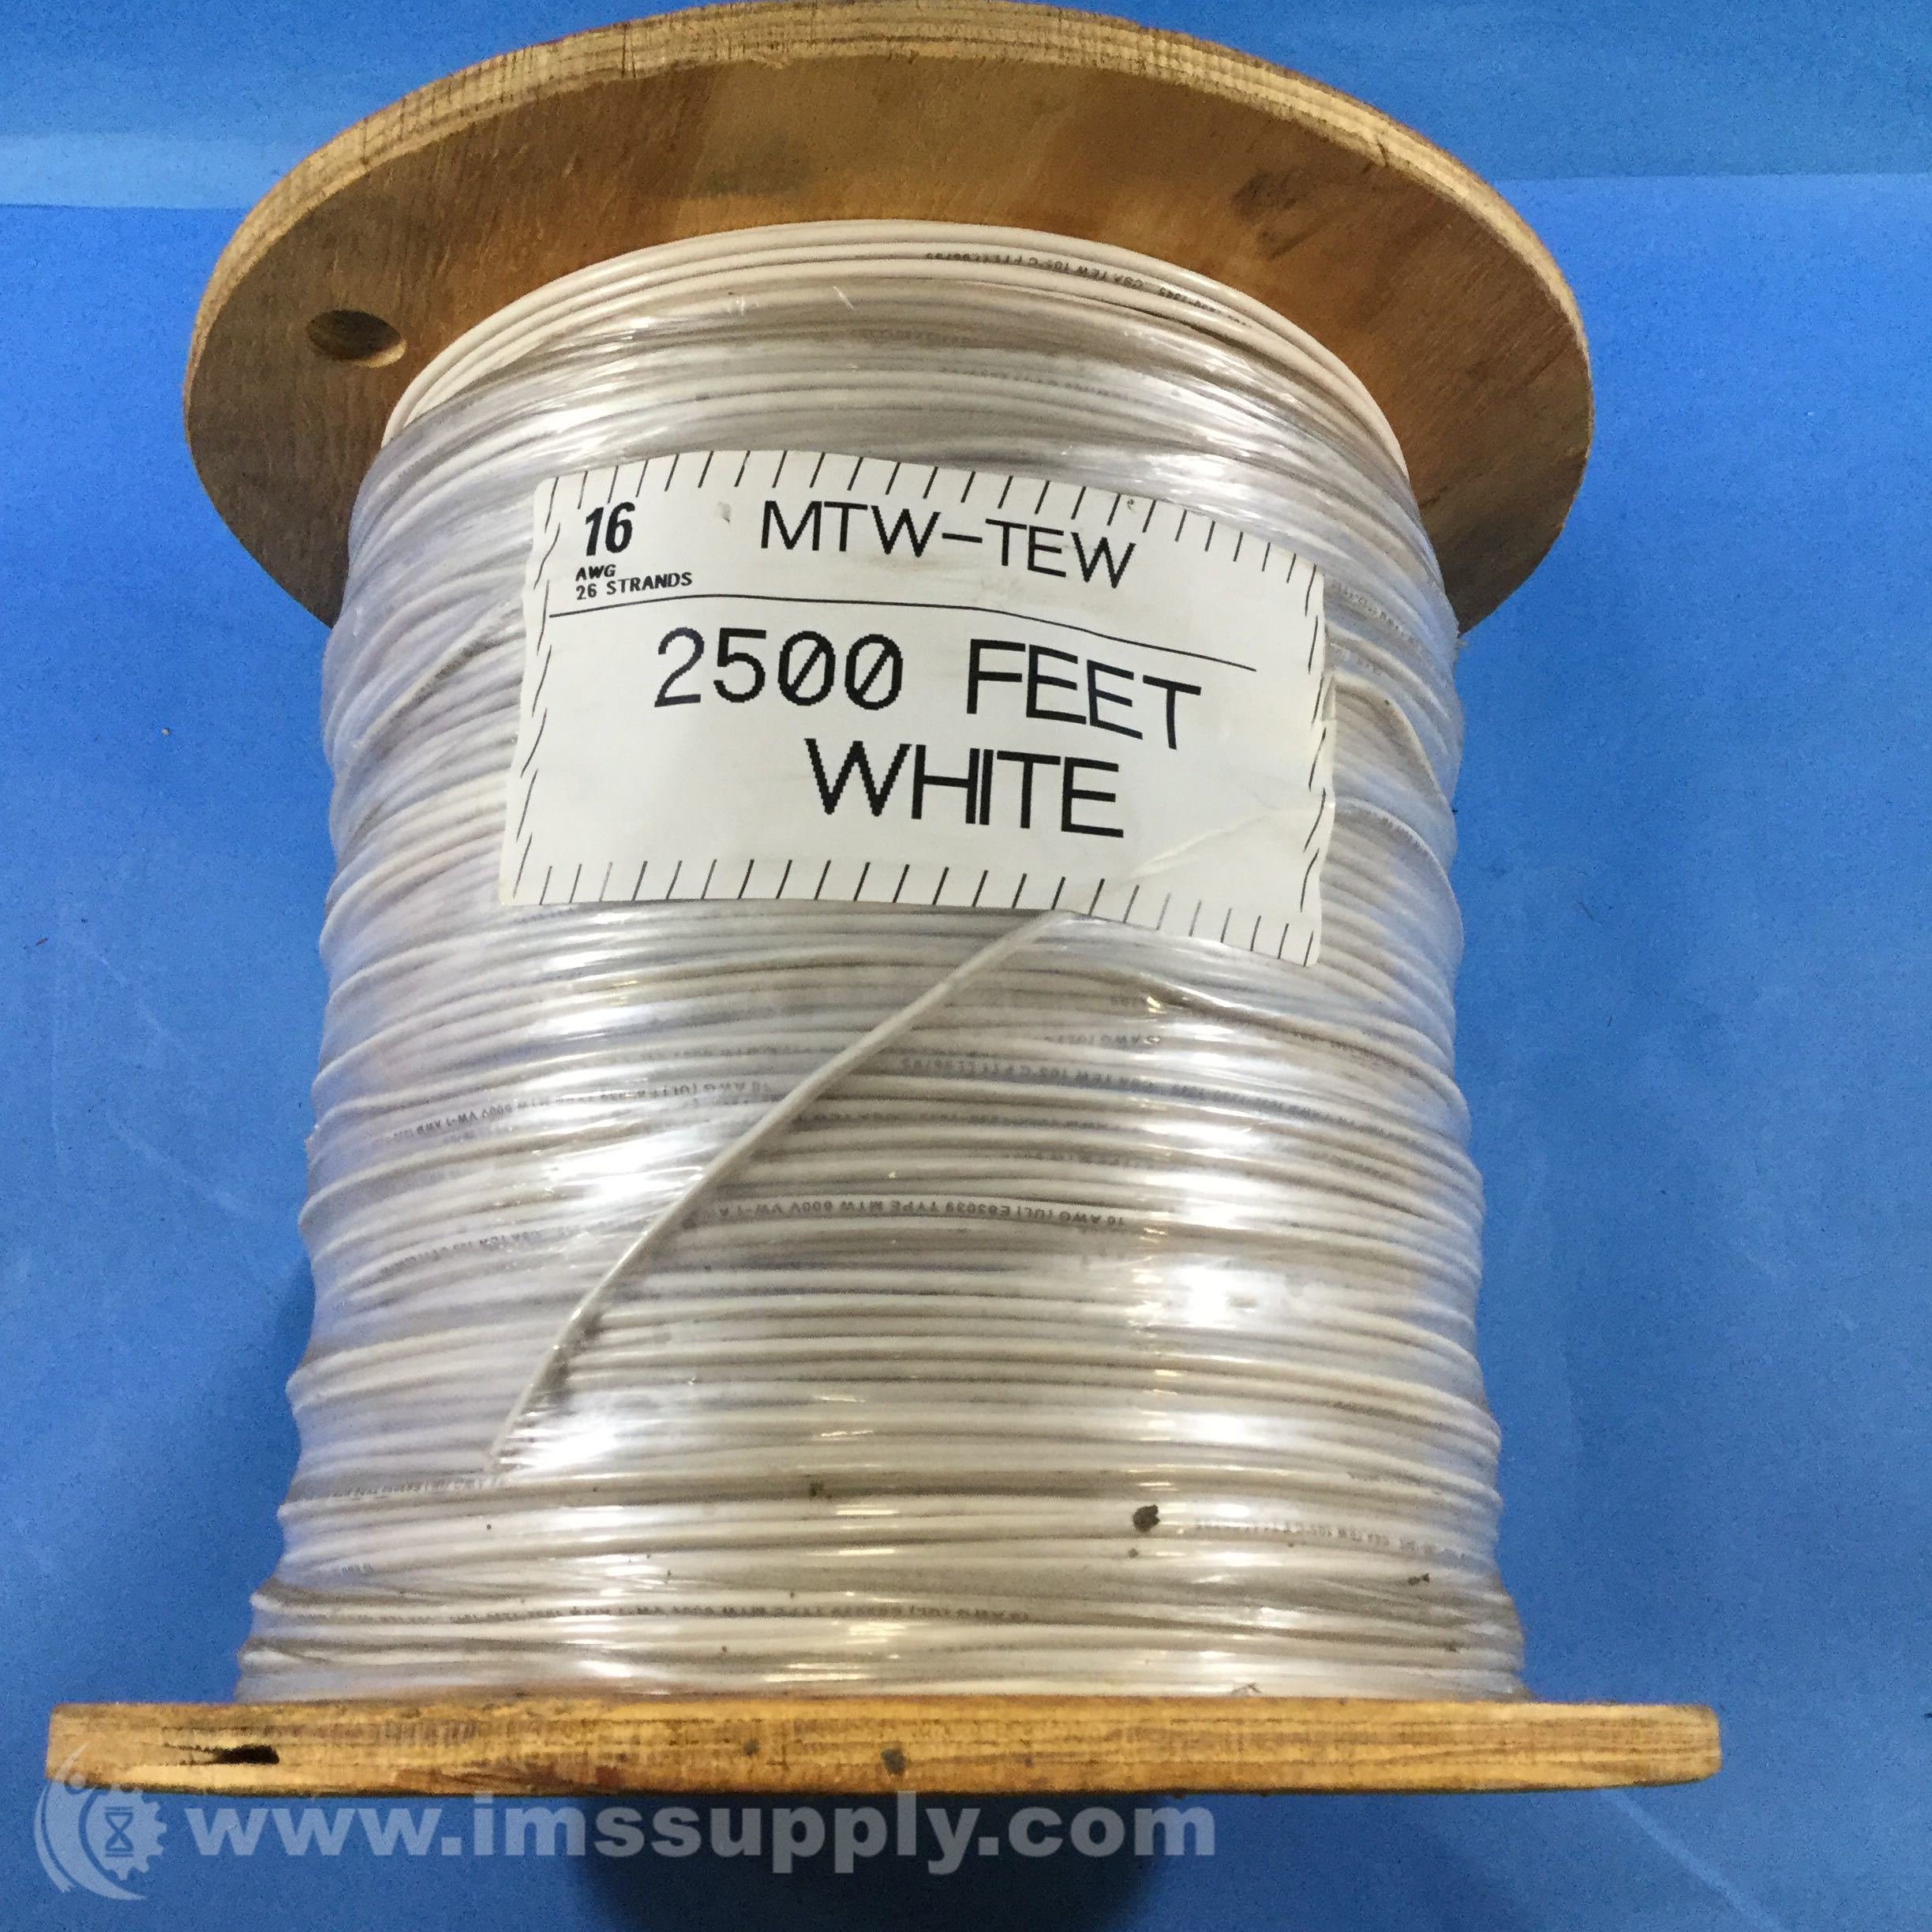 Southwire MTW-TEW 2500 FT White 16AWG 26 Strands Copper Wire - IMS ...